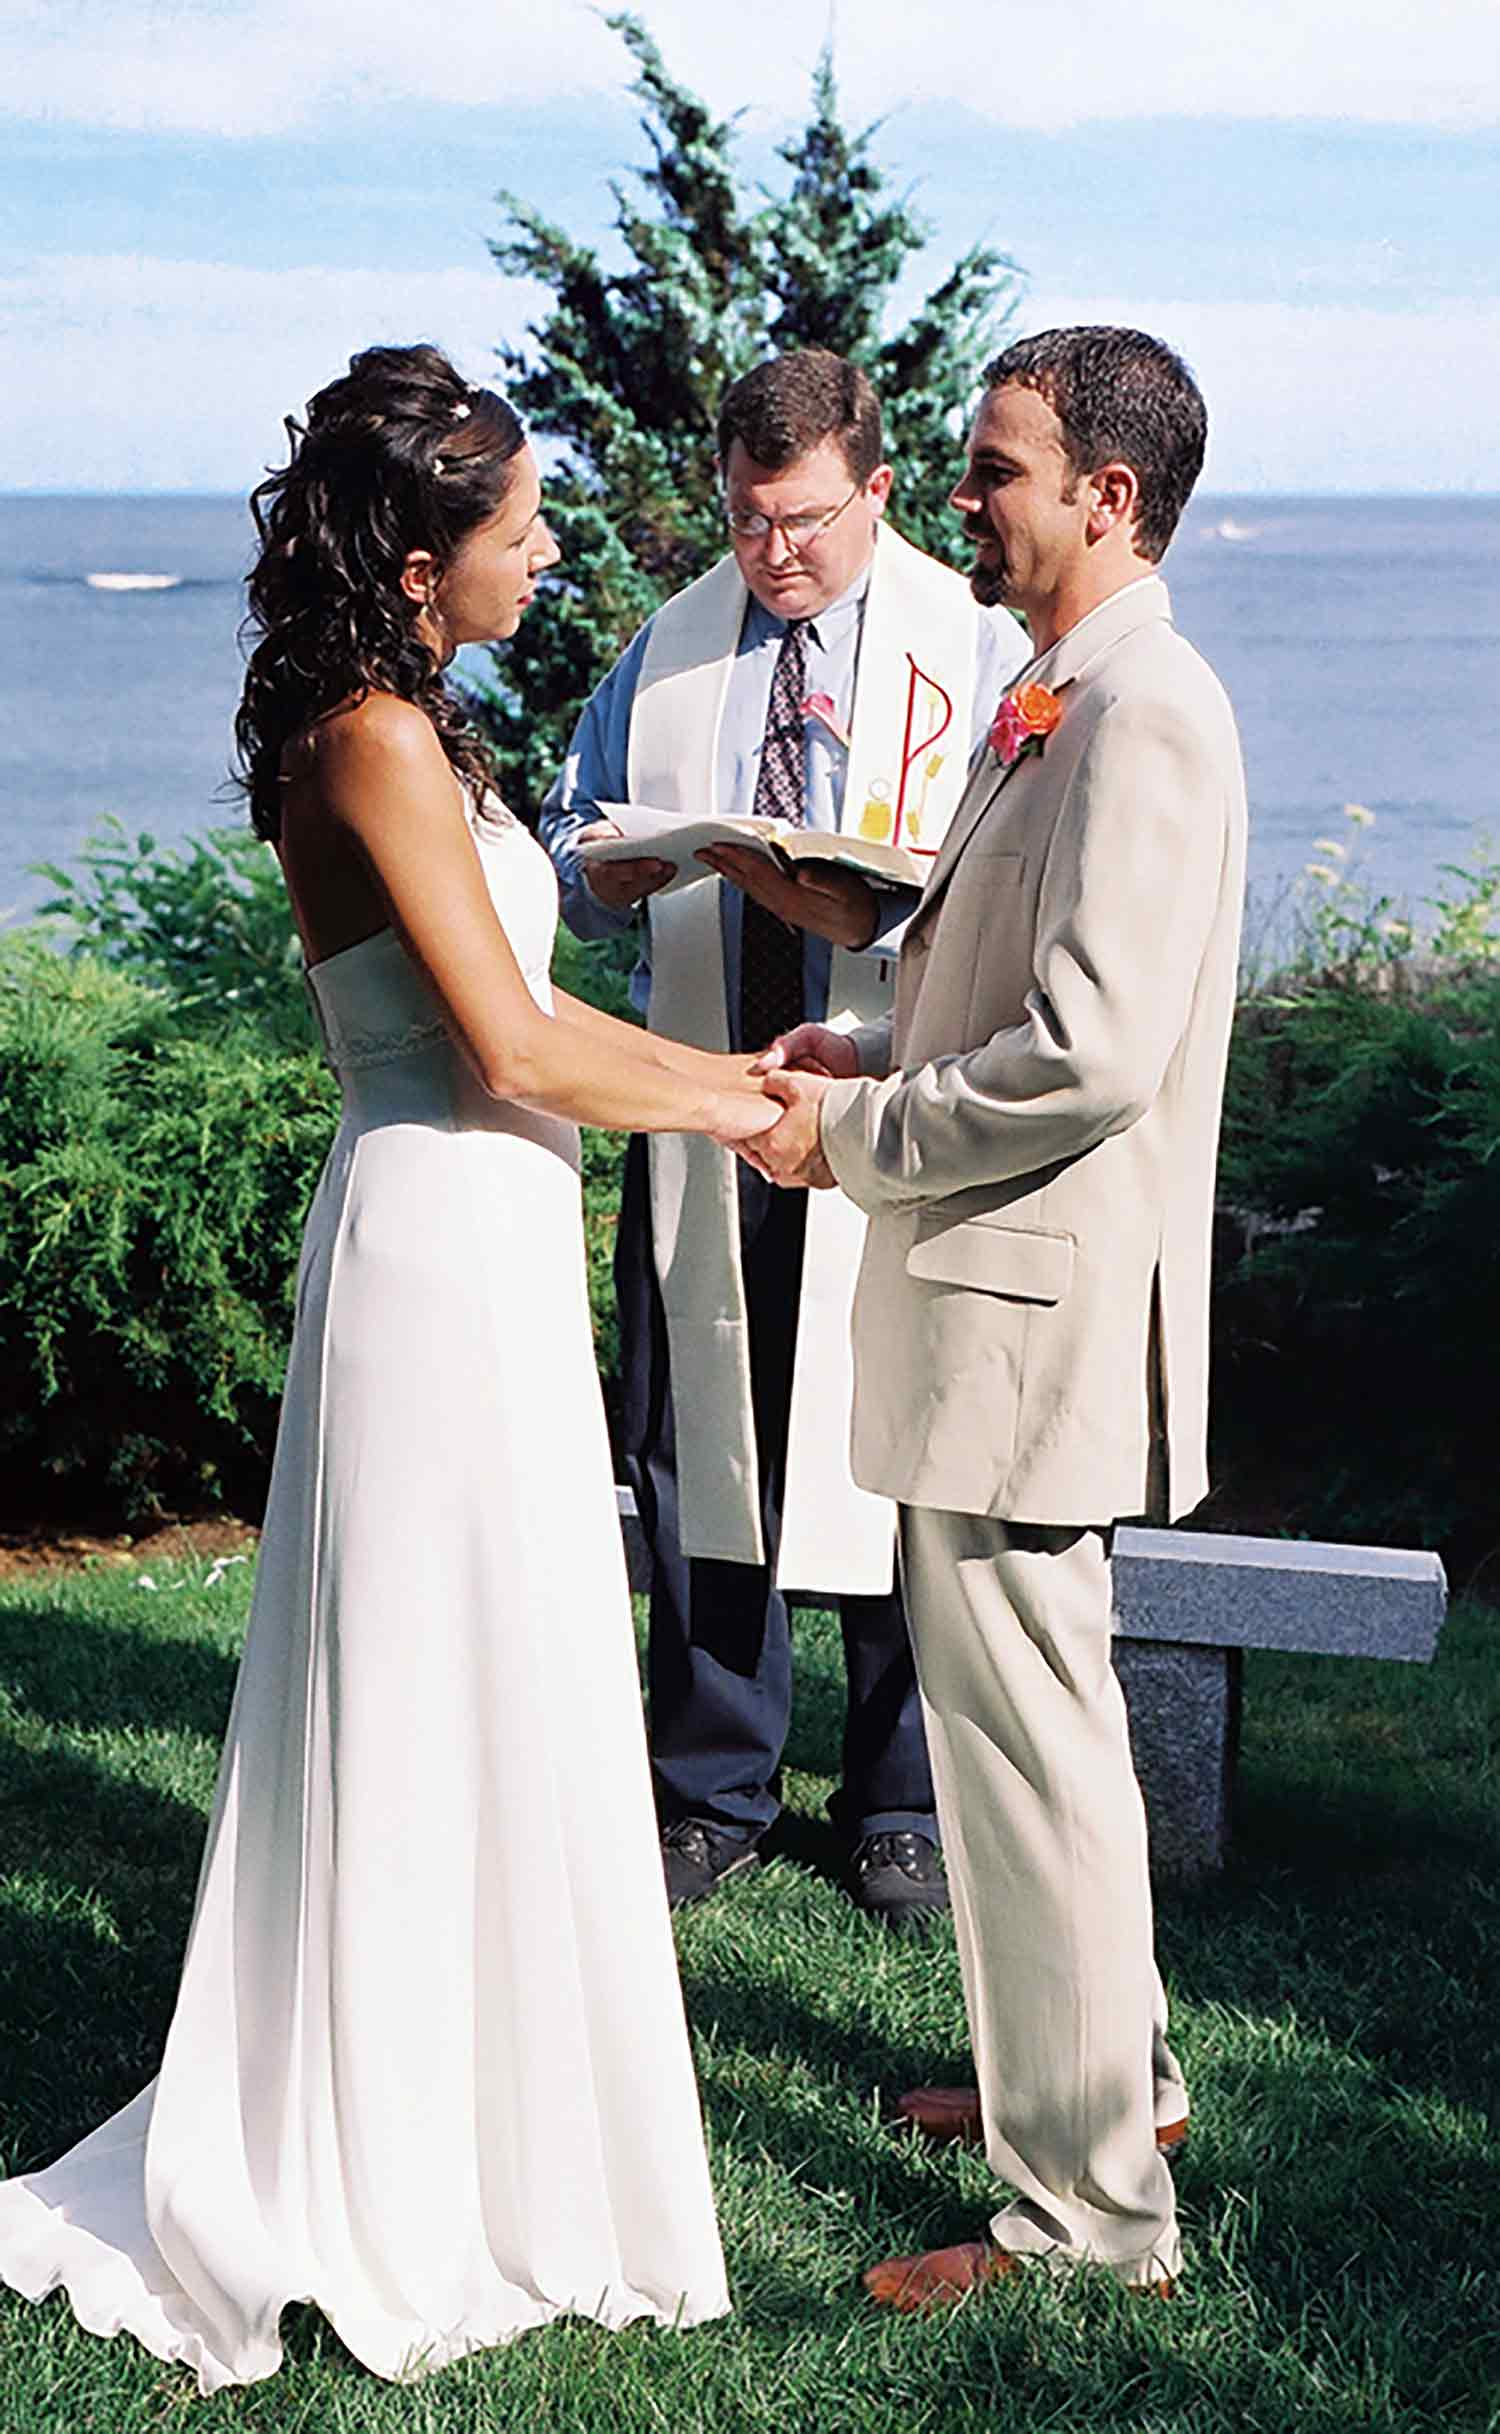 New Years Eve Packages Oceanfront Bed And Breakfast Inn In York Harbor Maine